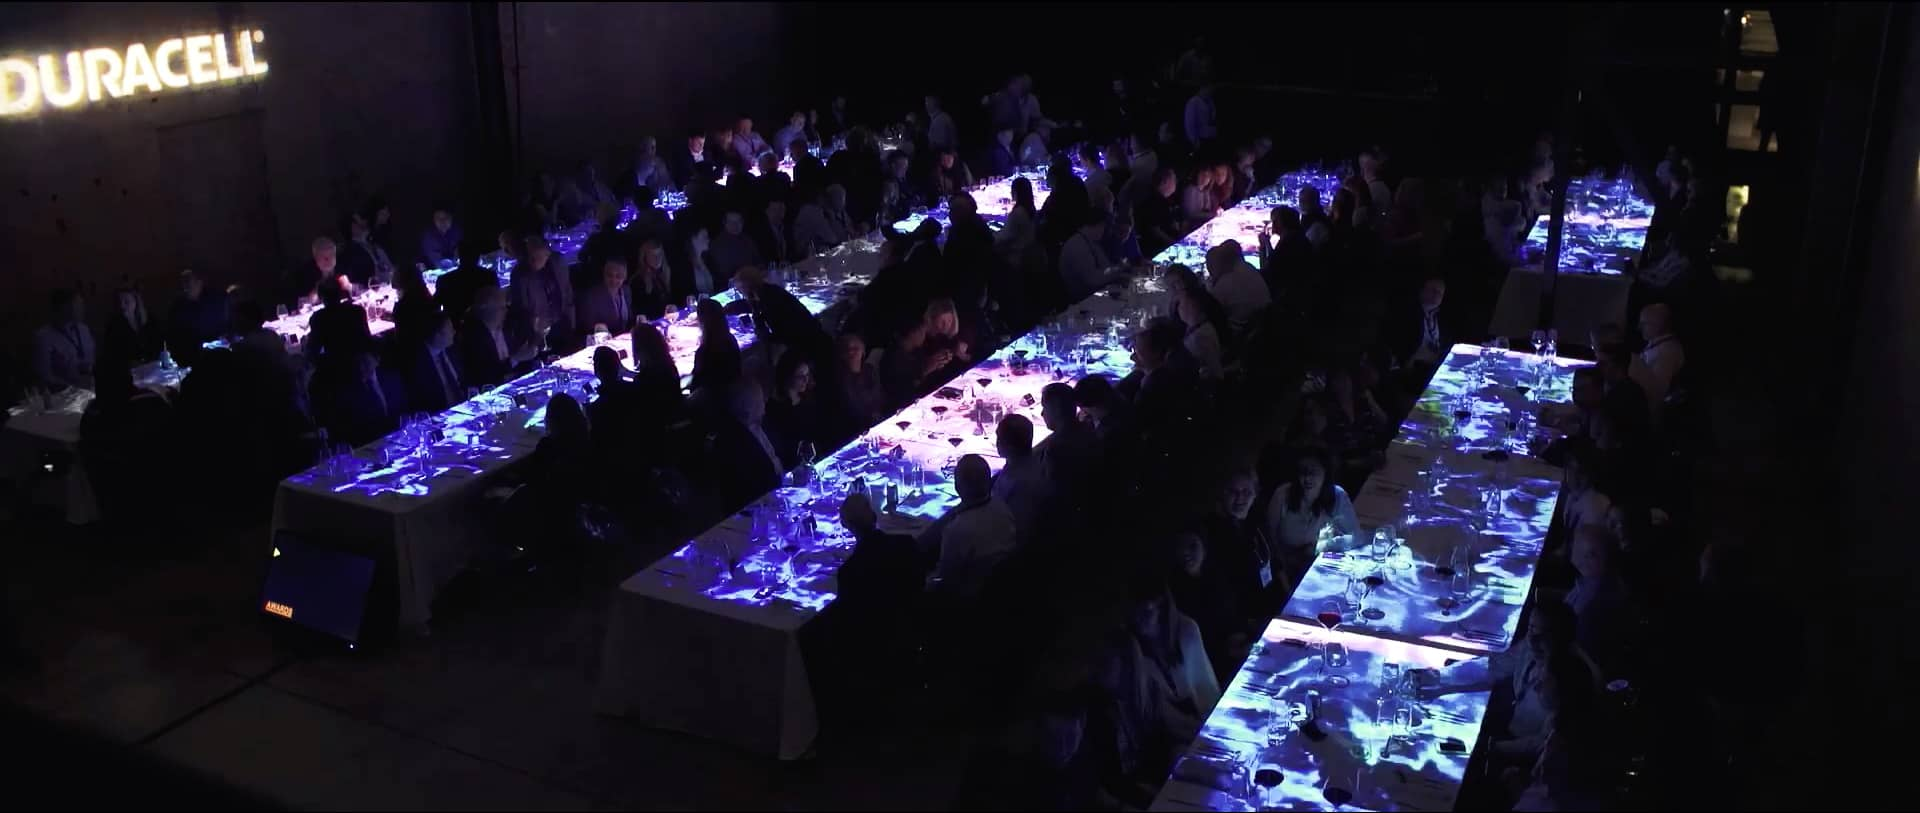 Duracell Video Mapping Projection Dinner